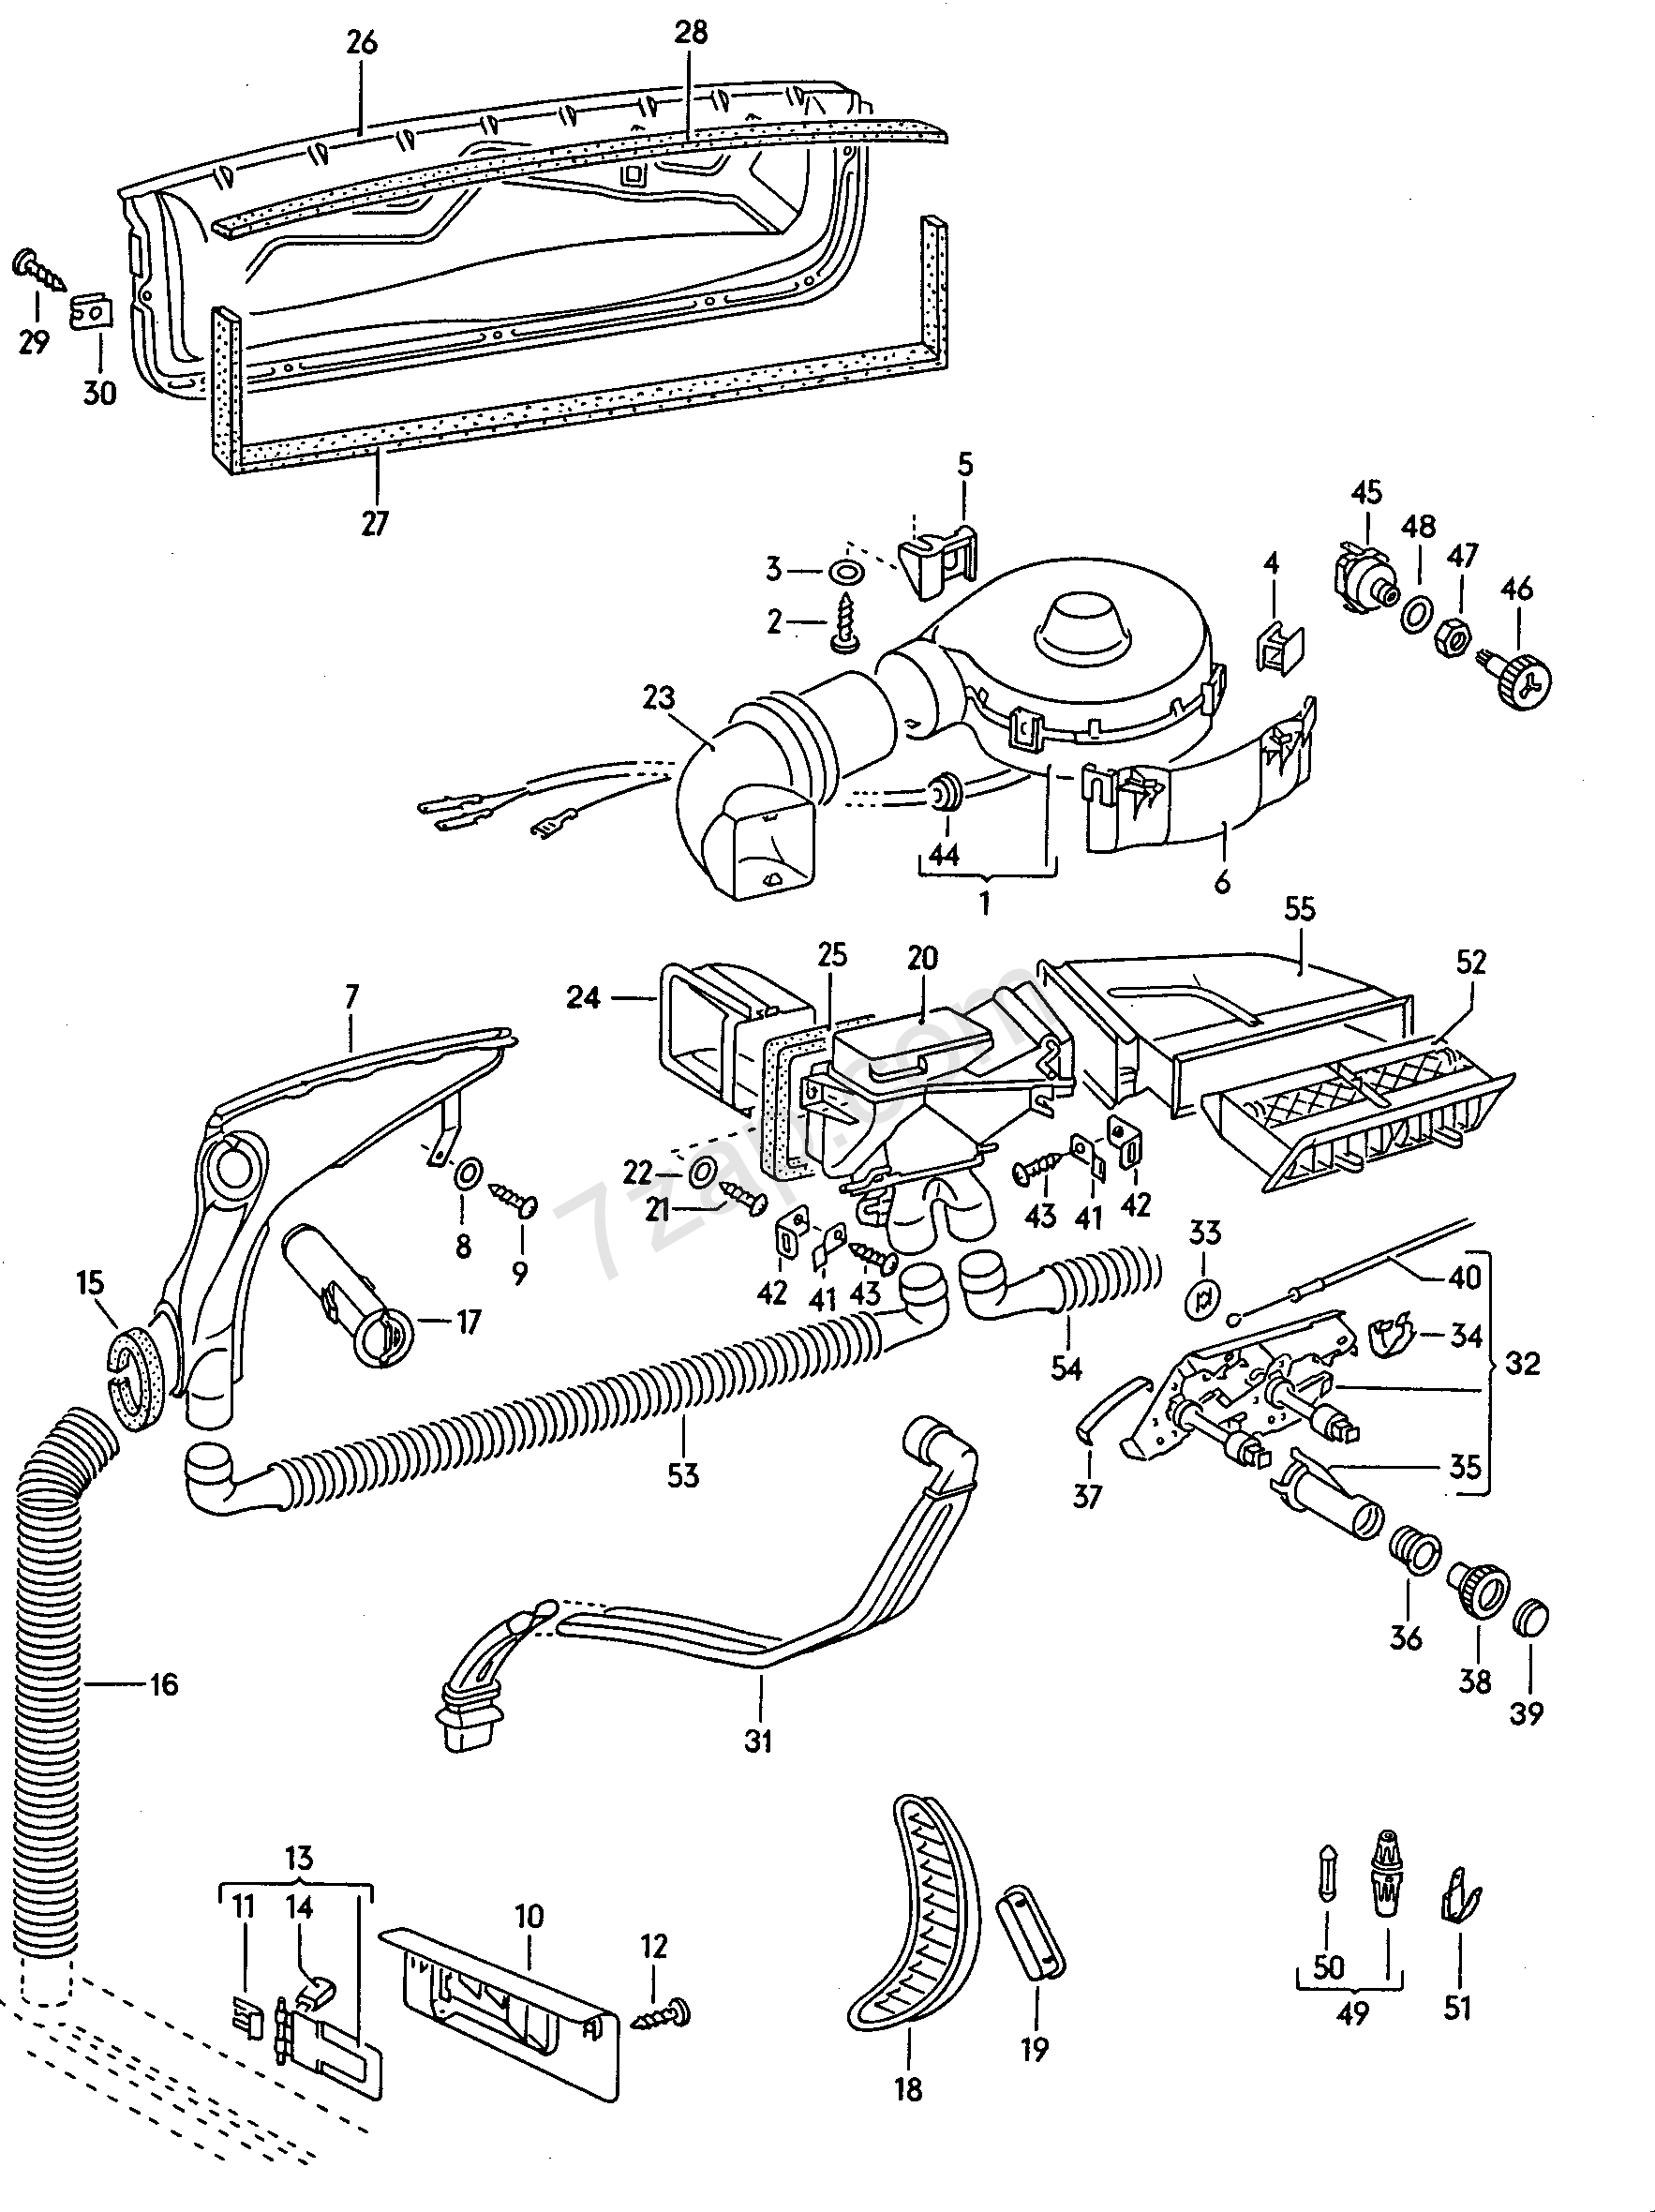 Heater And Fresh Air Flap Cables Contr Vw 1200 1300 1978 Engine Diagram 1302 13031200 Usa Year